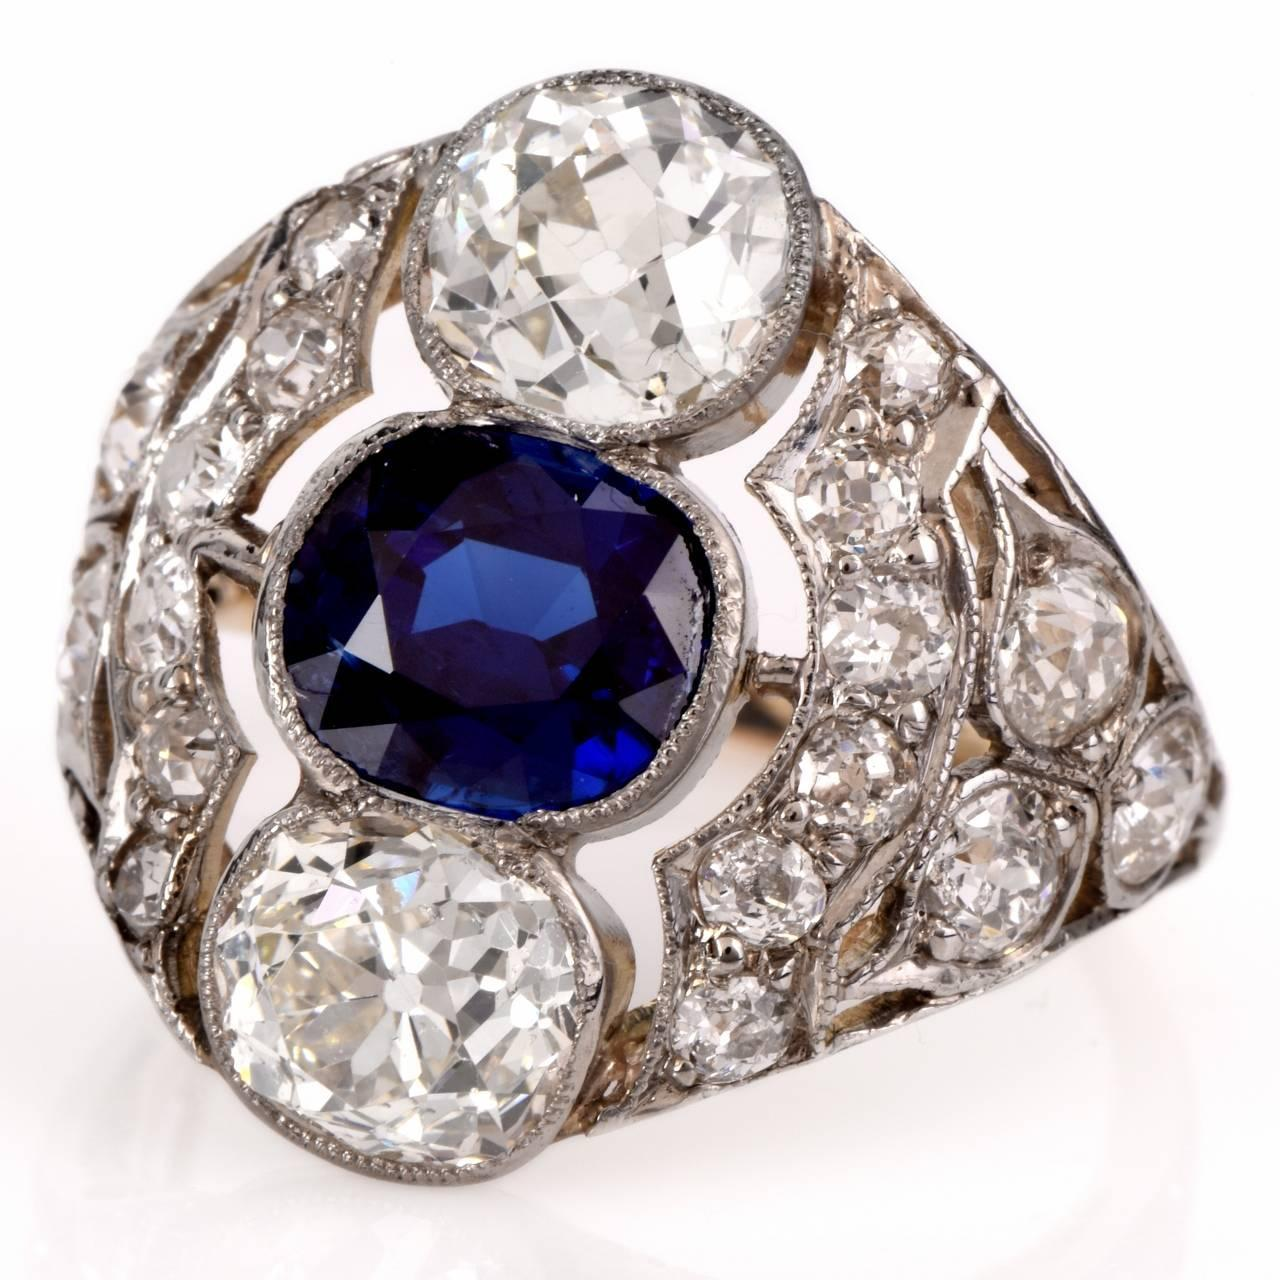 Antique Engagement Rings For Sale: Antique Sapphire Diamond Platinum Engagement Ring For Sale